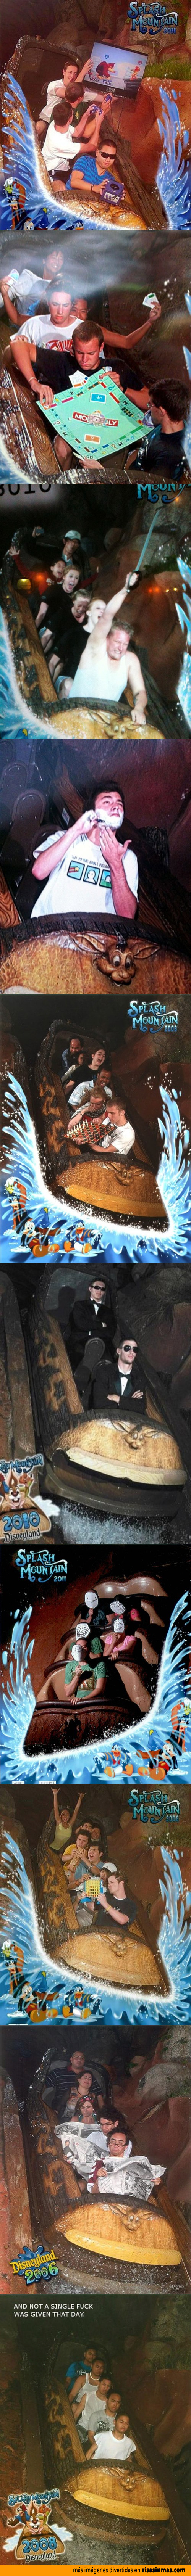 Fotos graciosas de Splash Mountain en Disneyland